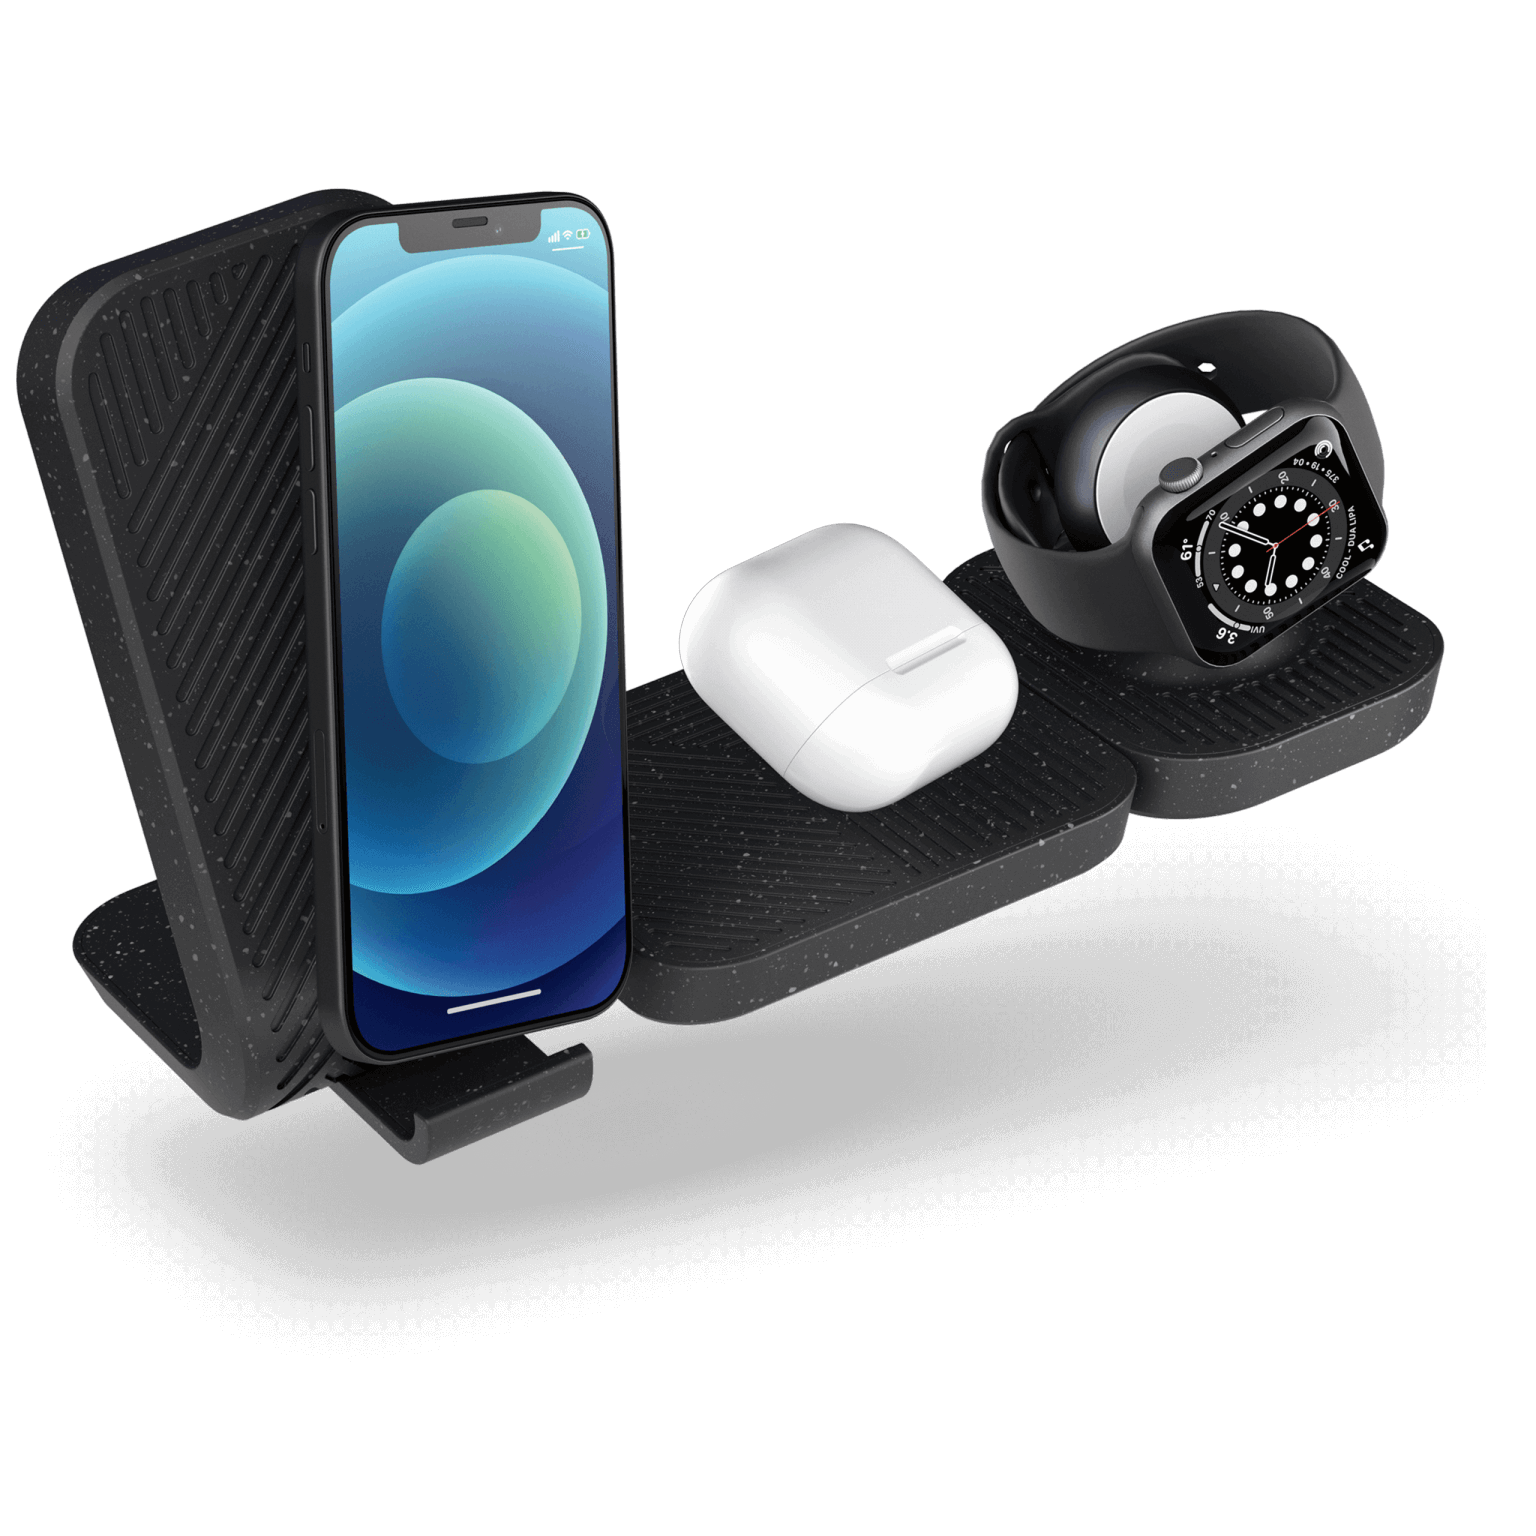 Modular wireless charger with iPhone 12 airpods and apple watch